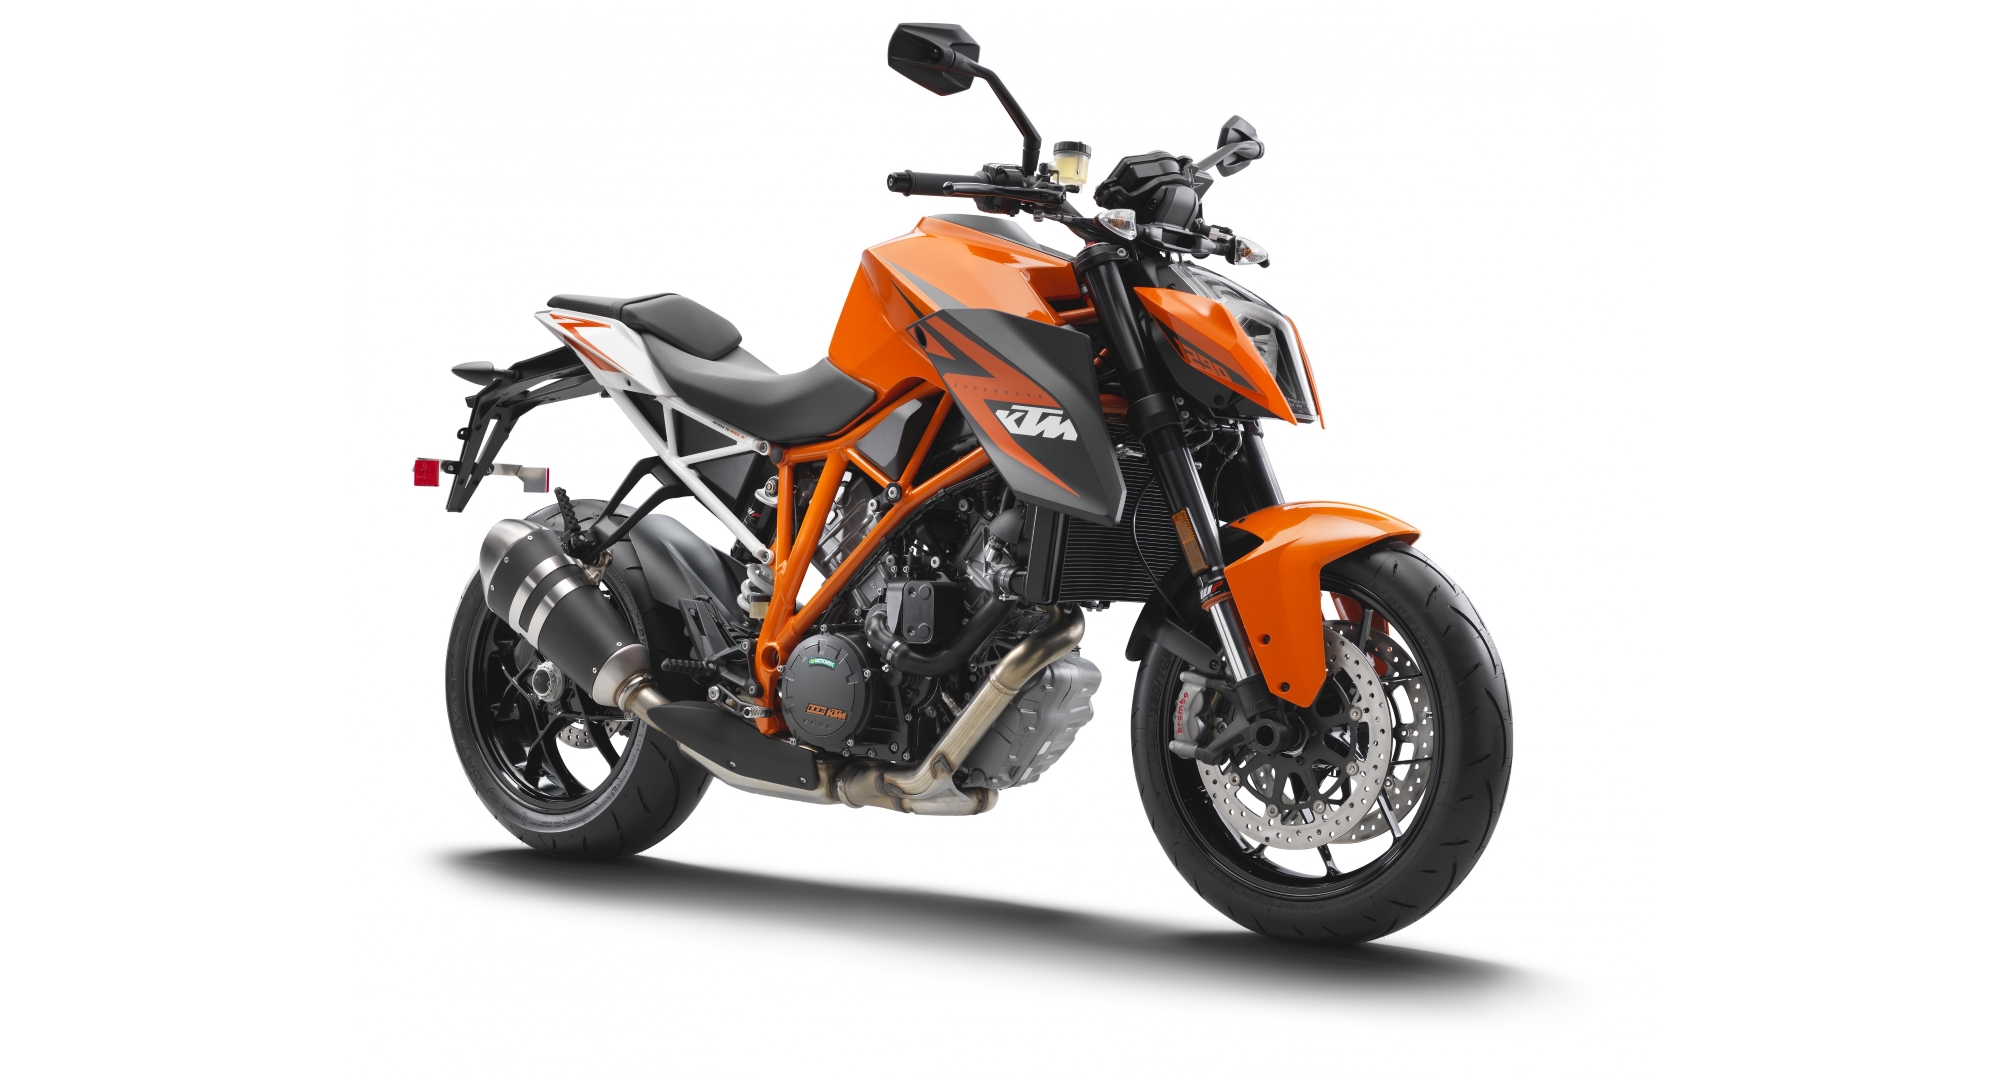 Ktm 1290 Super Duke R Recalled For Potential Fuel Leaks